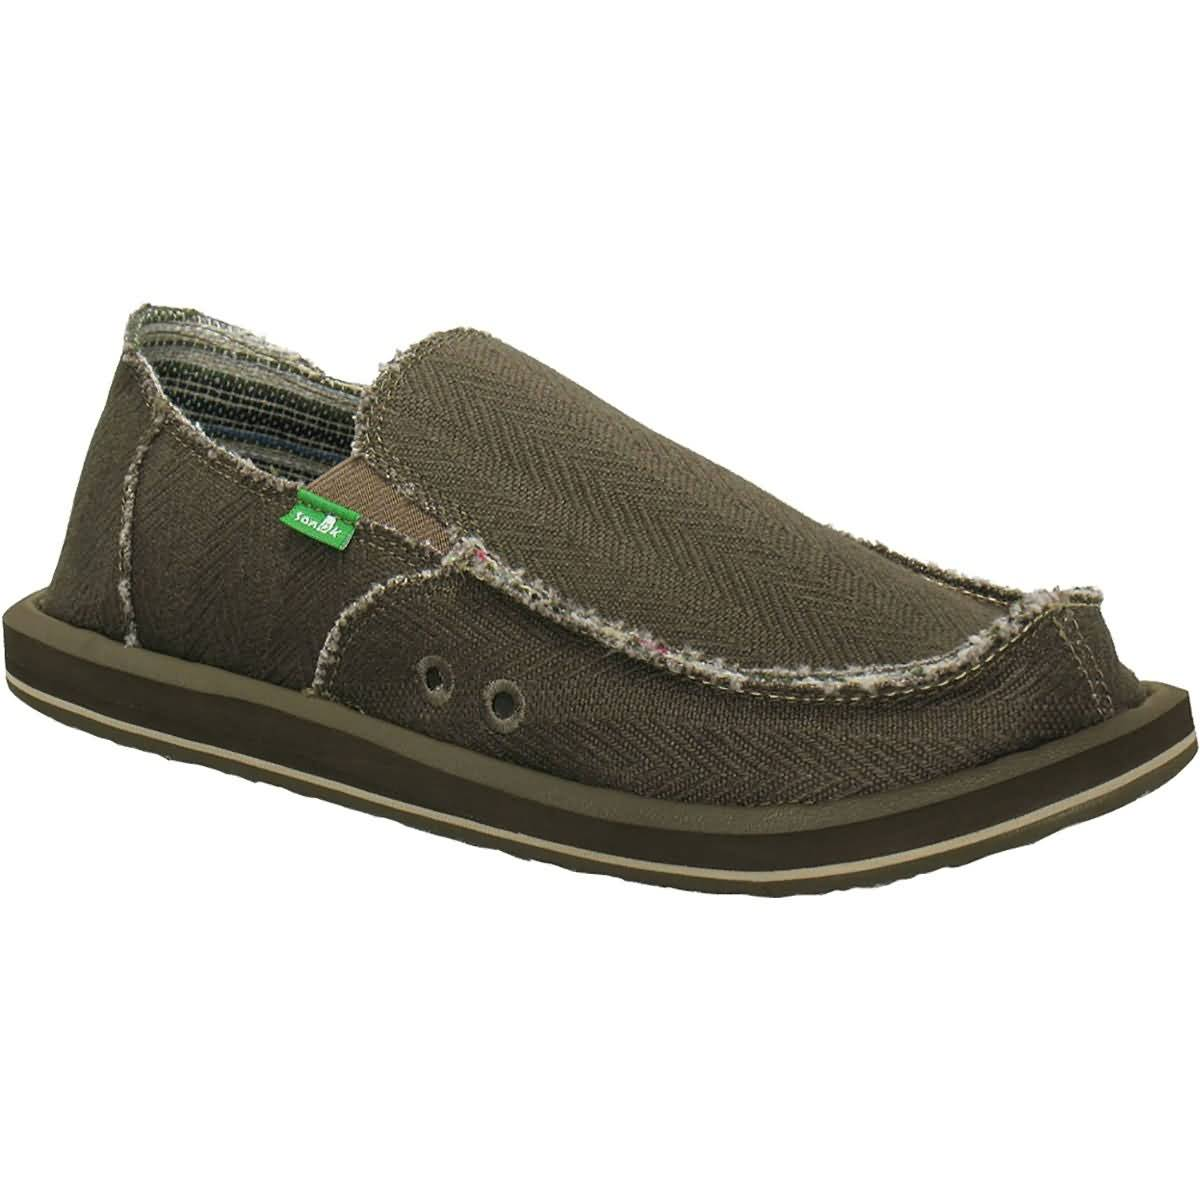 Sanuk Hemp Sidewalk Surfers Men's Shoes Footwear-SMF1020